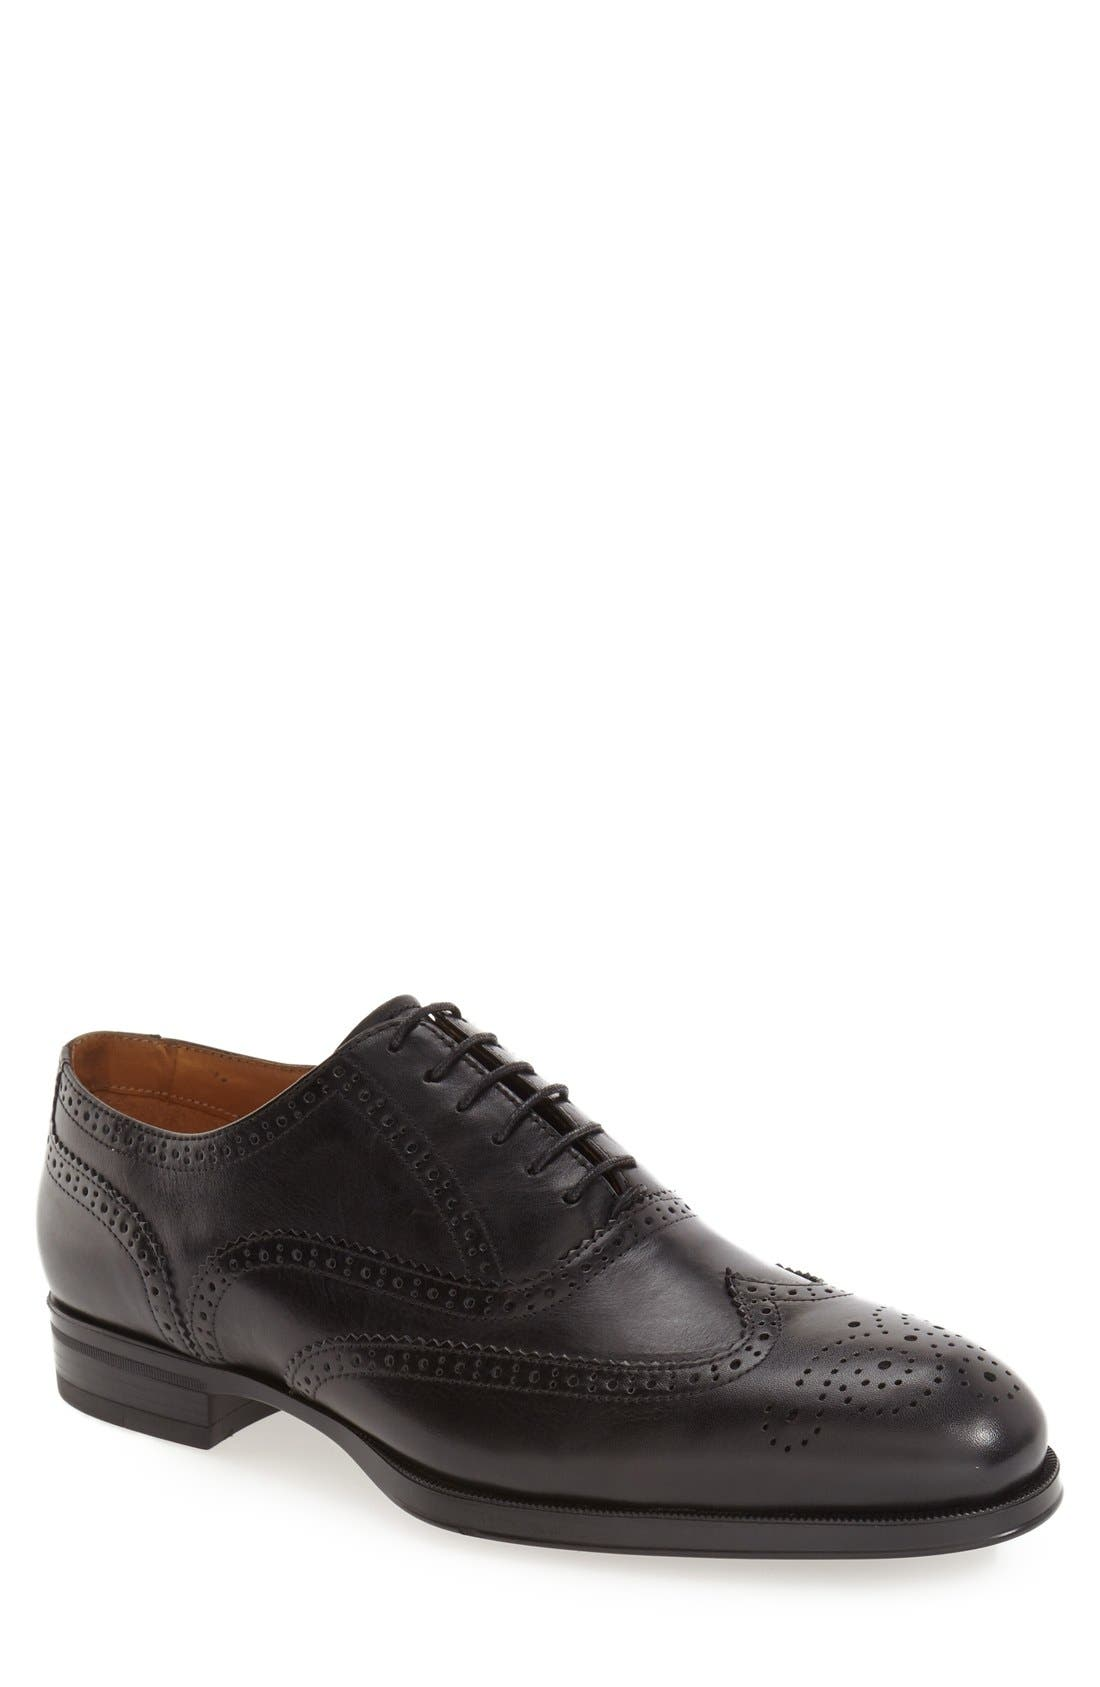 'Tallden' Wingtip,                             Main thumbnail 1, color,                             Black Leather